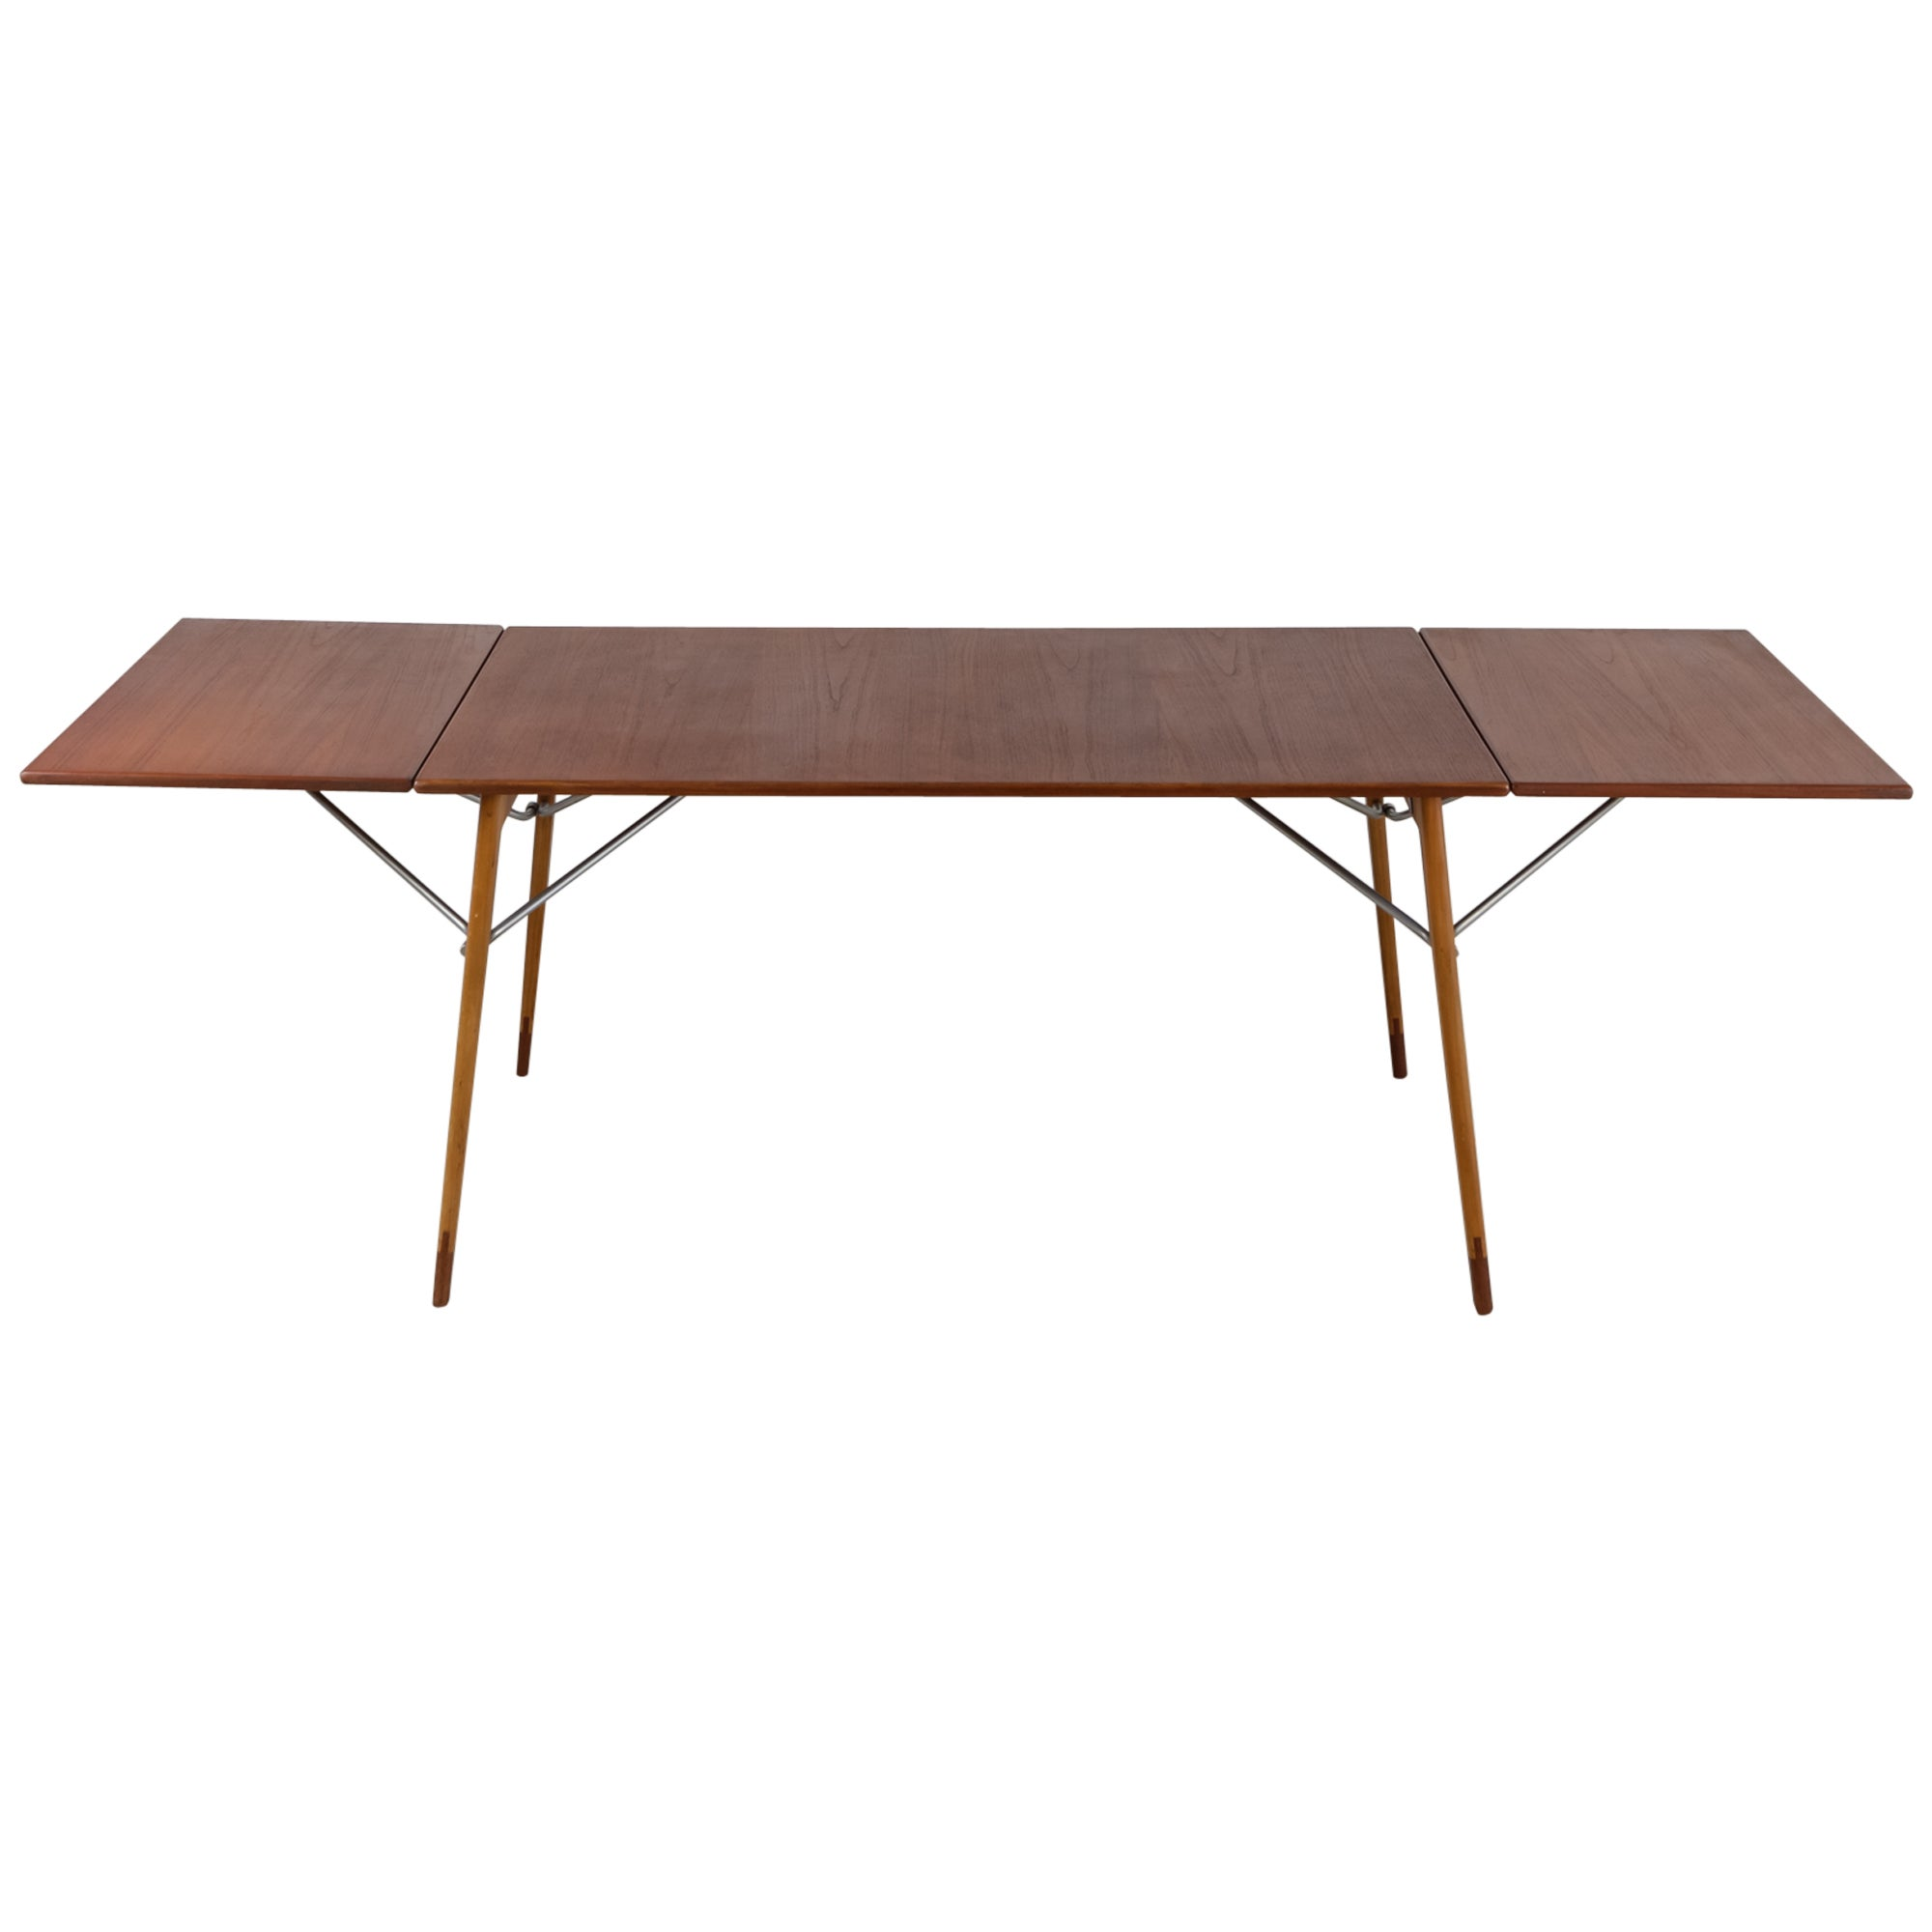 Børge Mogensen Double Drop Leaf Table For Søborg Sweden 1950s At 1stdibs